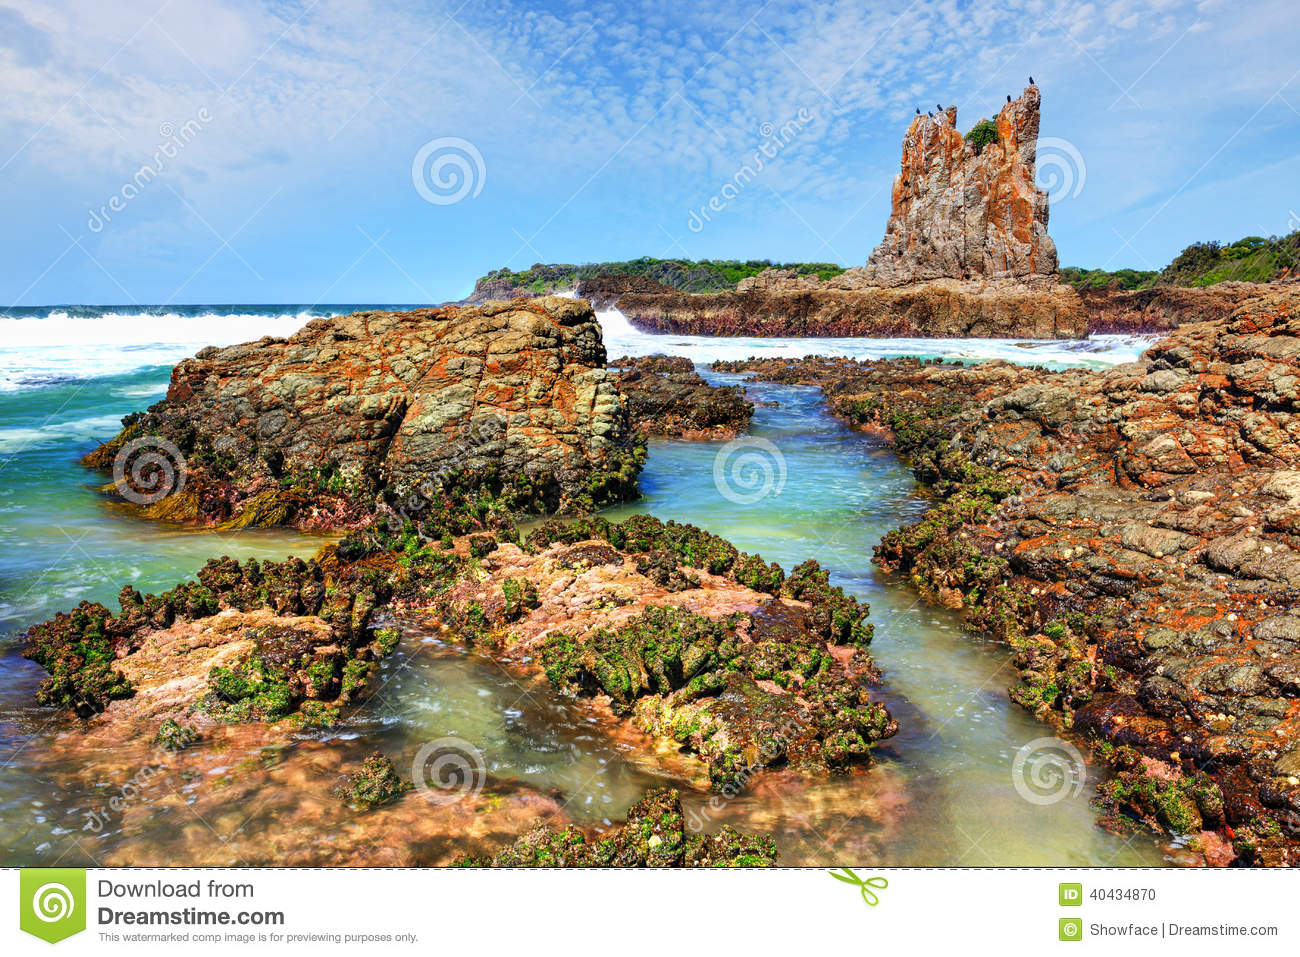 Cathedral Rocks Kiama Downs Australia Stock Photo - Image: 40434870